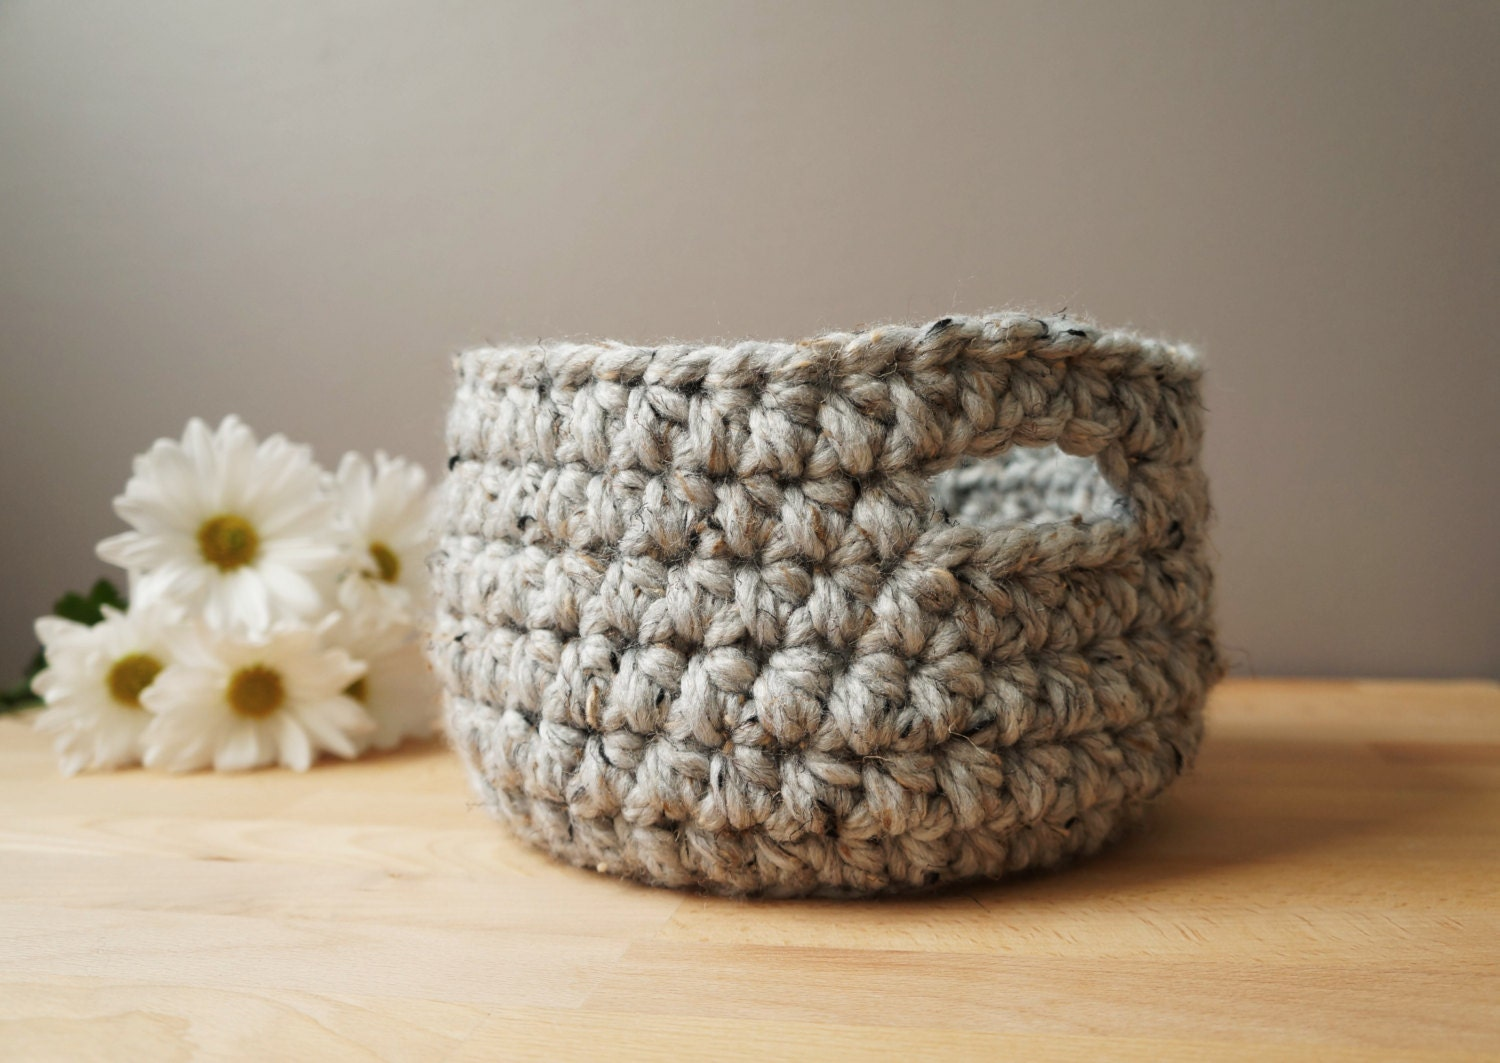 Woven Yarn Basket : Woven basket farmhouse decor soft yarn room